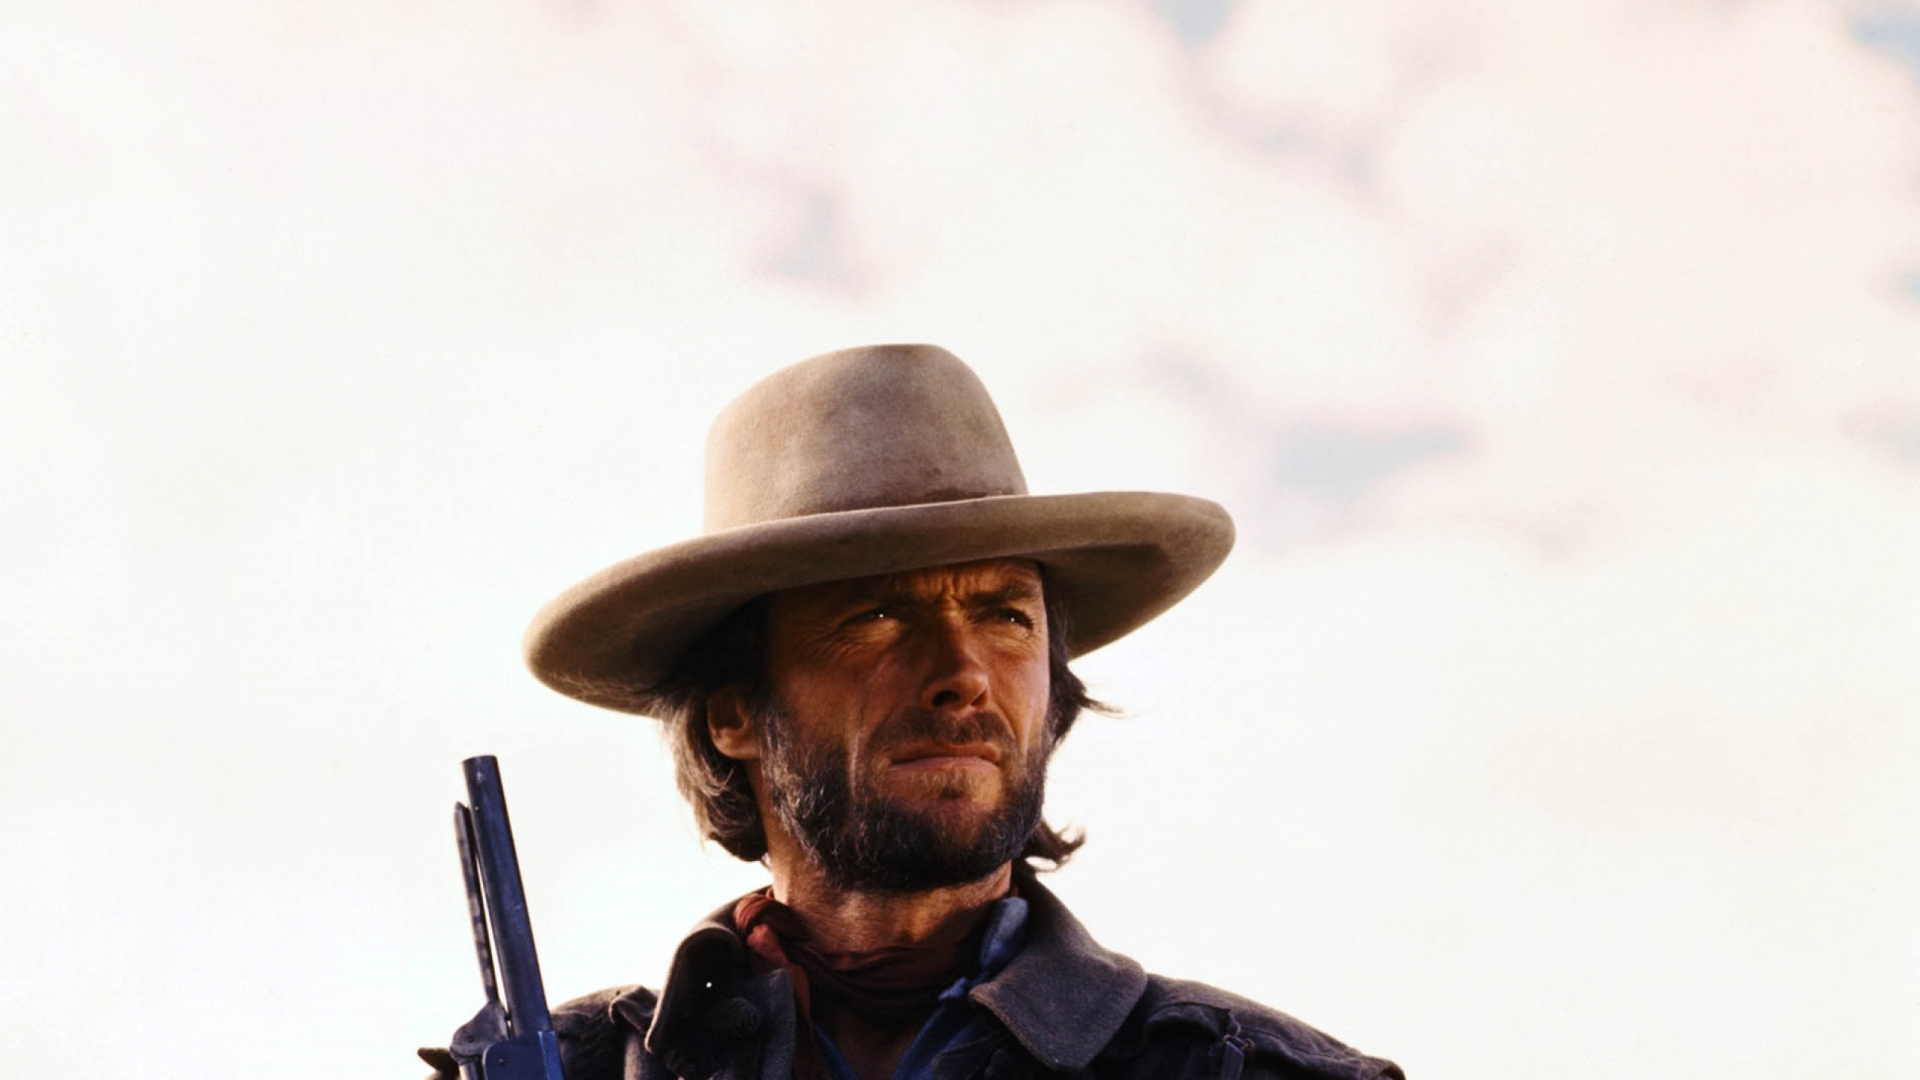 Free Download Clint Eastwood Cowboys The Outlaw Josey Wales